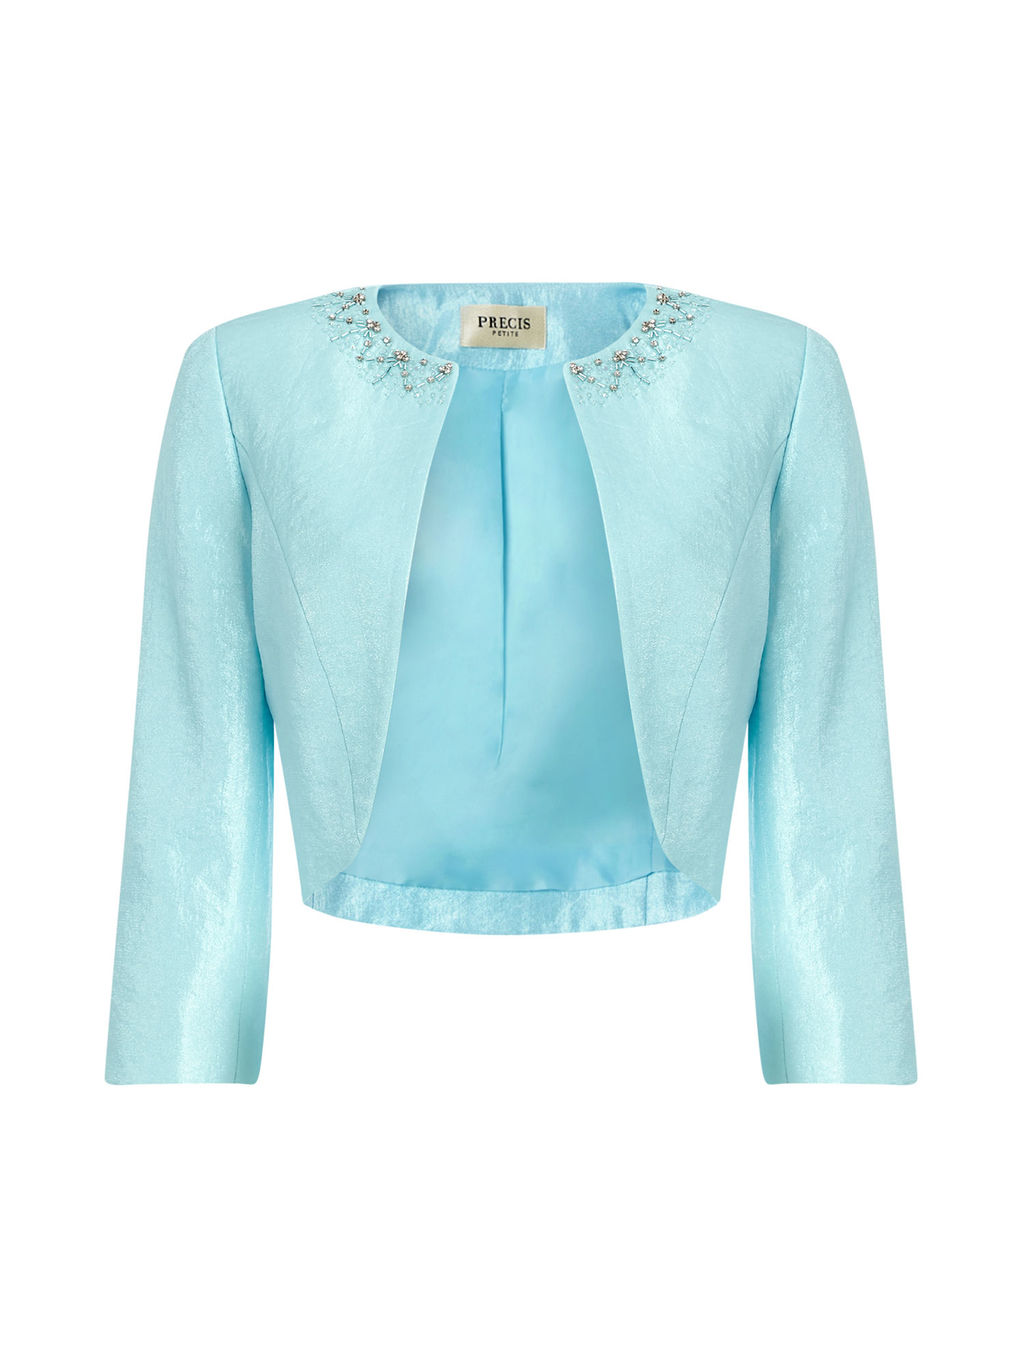 Embellished Bolero - pattern: plain; style: bolero/shrug; collar: round collar/collarless; predominant colour: turquoise; fit: tailored/fitted; occasions: occasion; sleeve length: 3/4 length; sleeve style: standard; texture group: structured shiny - satin/tafetta/silk etc.; collar break: low/open; pattern type: fabric; embellishment: beading; fibres: viscose/rayon - mix; length: cropped; season: s/s 2016; wardrobe: event